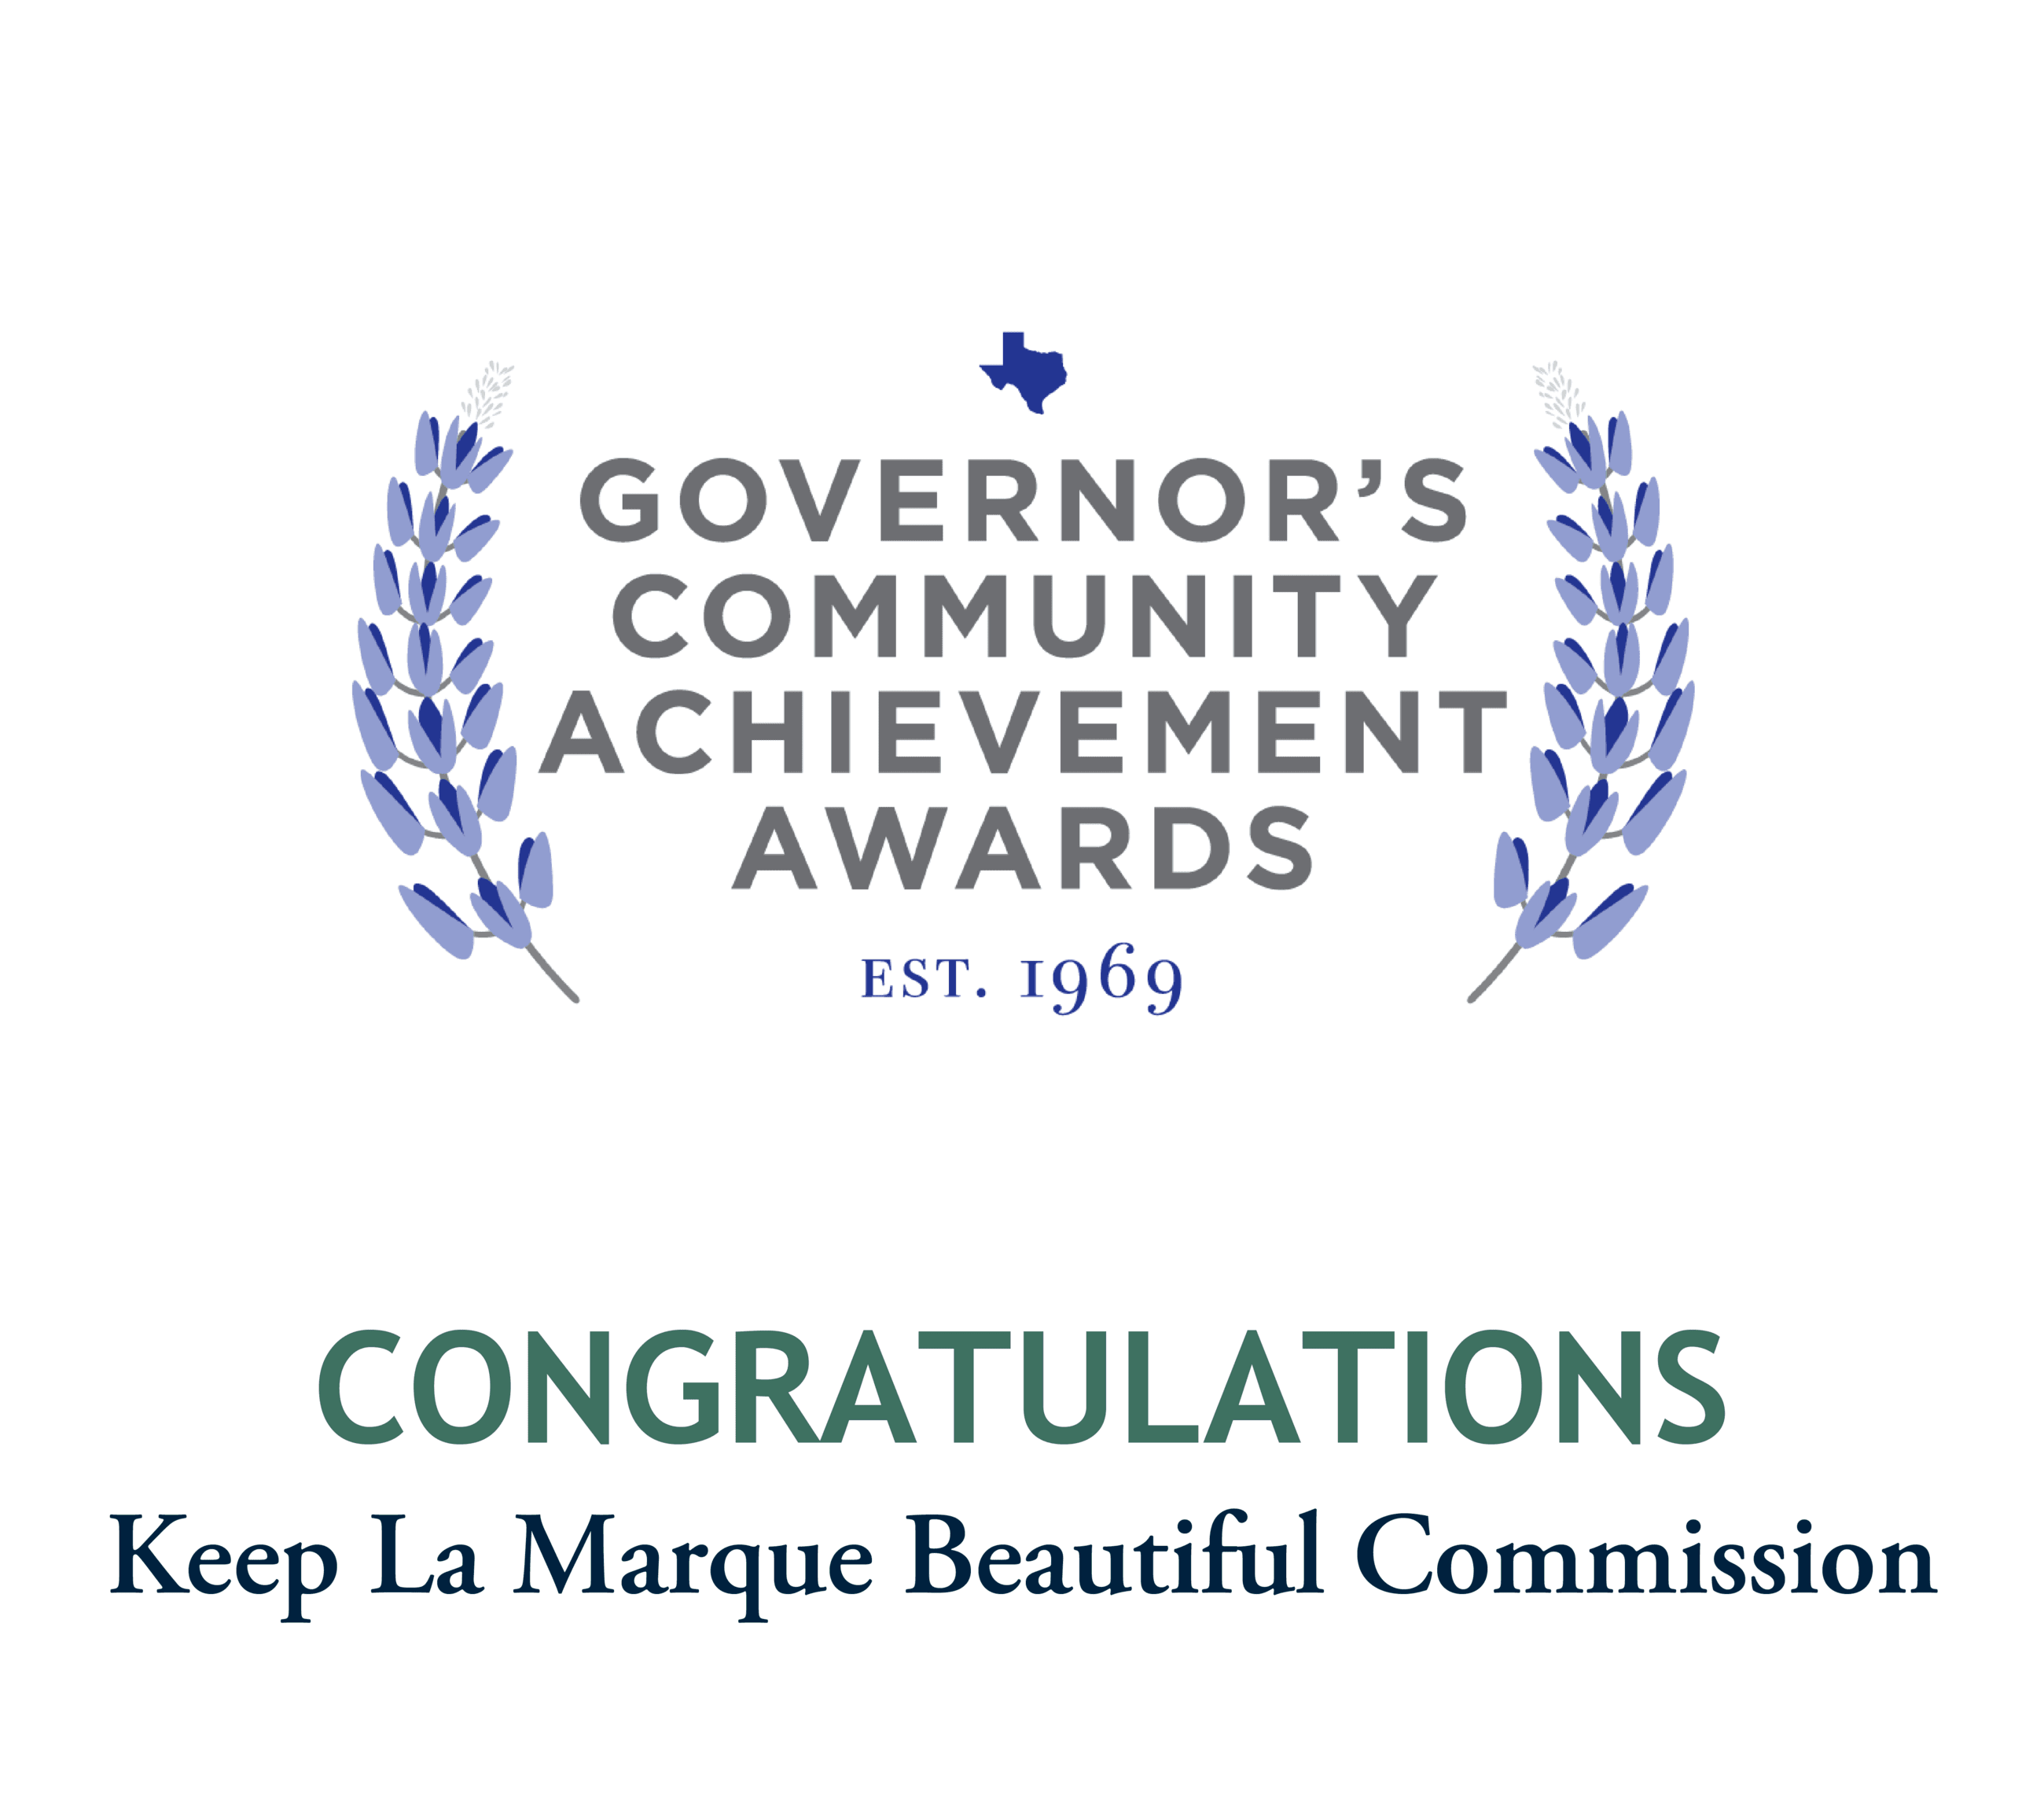 KLMBC Governors Award graphic